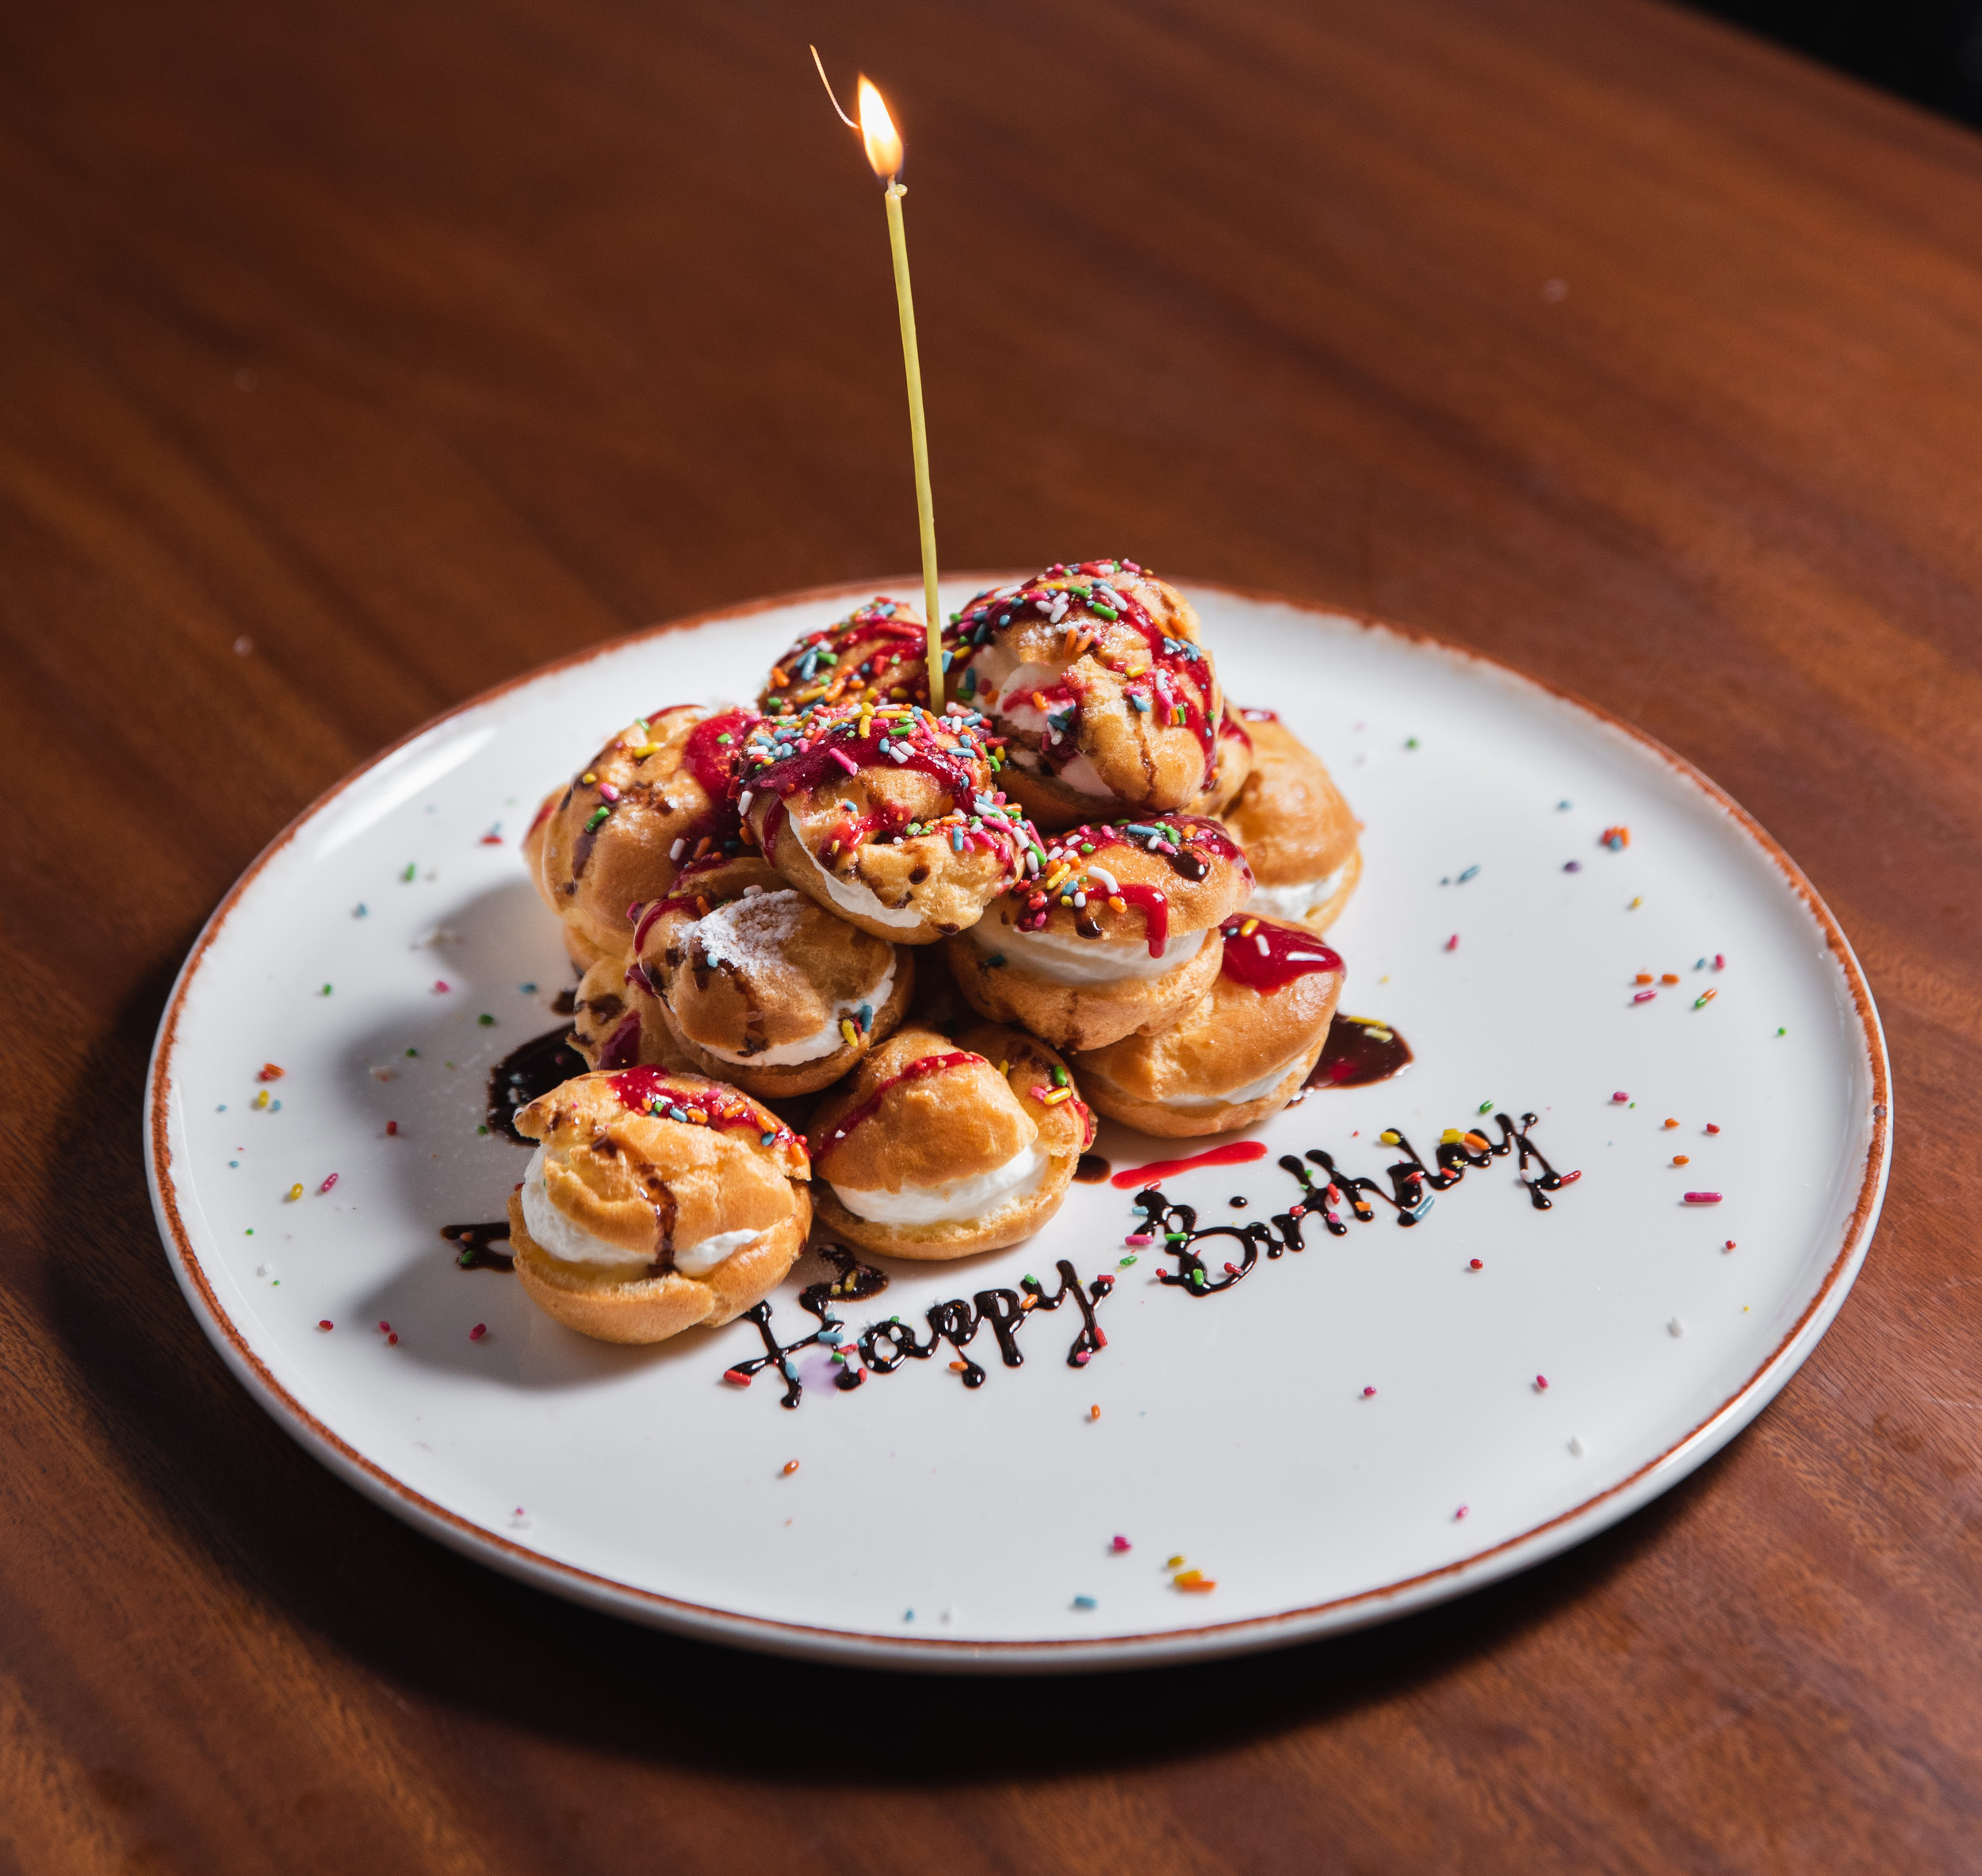 What's a celebration without something sweet?   Choose from three options available:   1. Cakeage Charge ($15)   Bring your own cake and leave it to us to serve.   2. Dark Chocolate Birthday Tart by Tarte by Cheryl Koh ($75)   Serves 8 – 10 pax  2 days advance notice required   3. LINO Birthday Dessert   Up-sized version of in-house dessert options  2 days advance notice required  Please  call  for more information